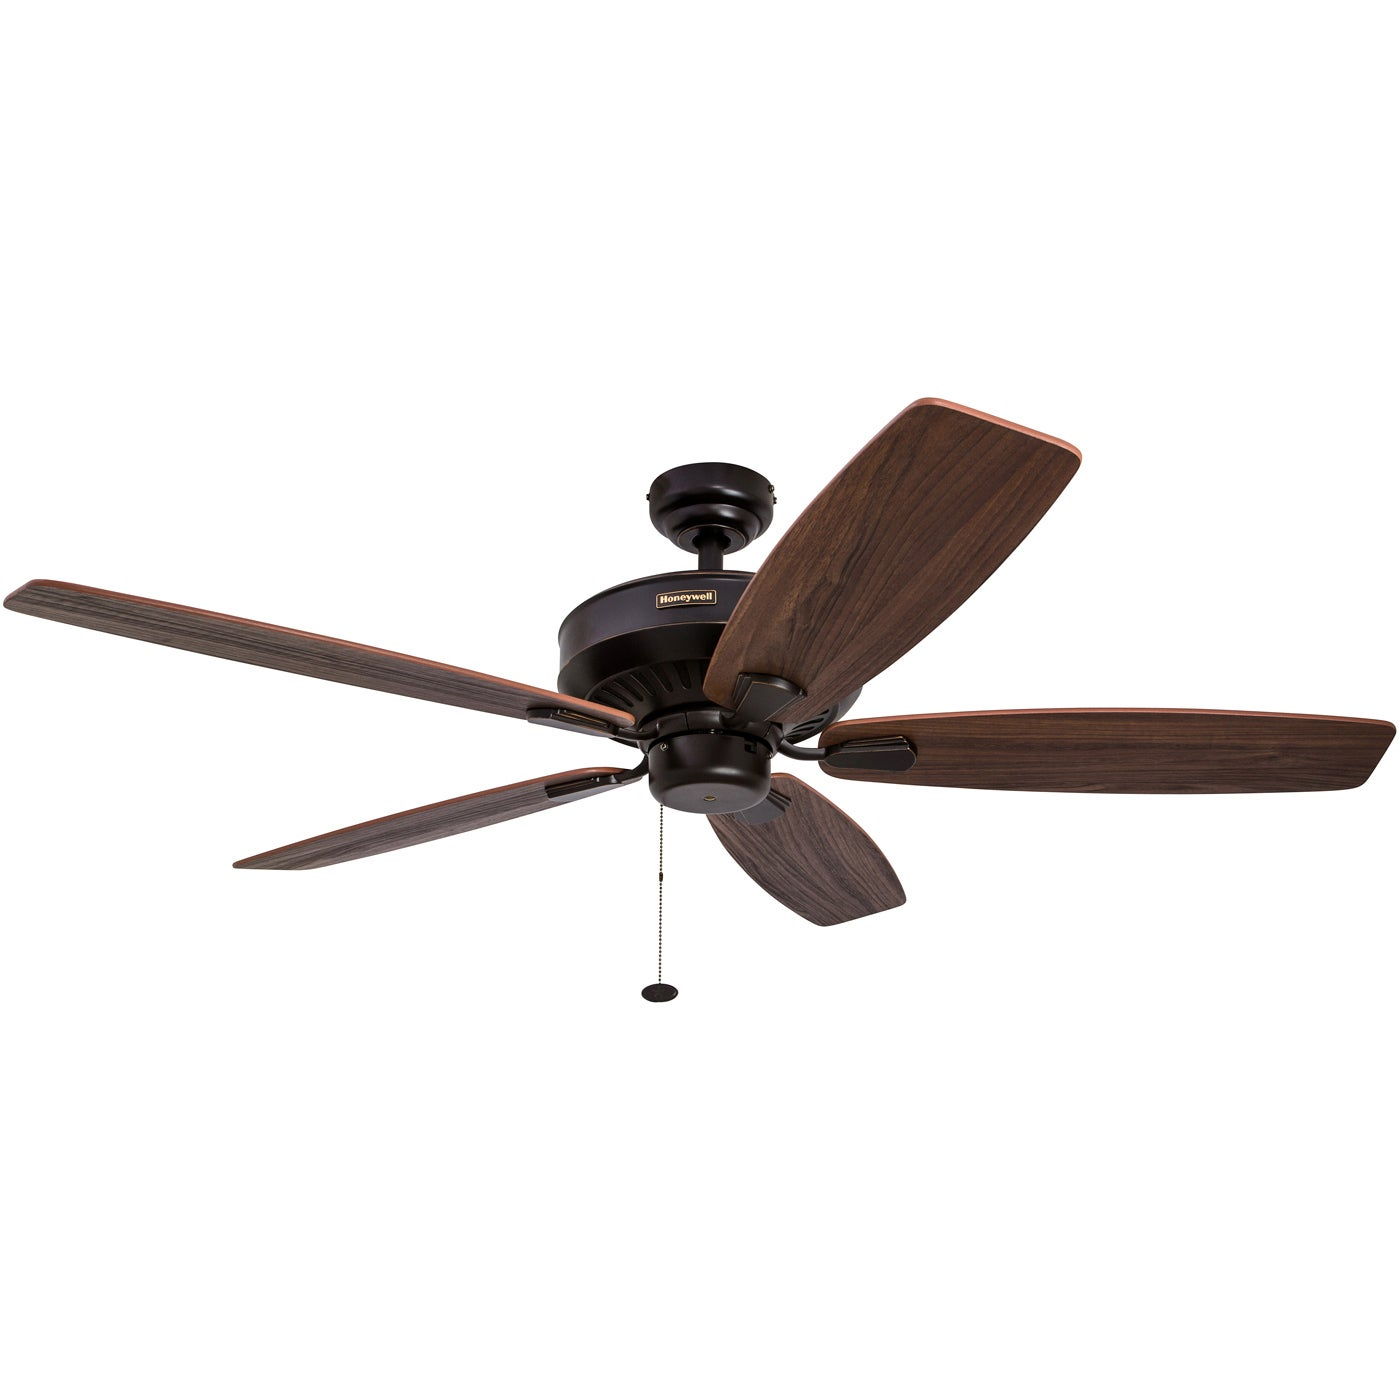 fan in bronze magnifying oil andover capitol light image shown ceilings fanimation and item finish rubbed cfm glass amber ceiling cy with blade inch